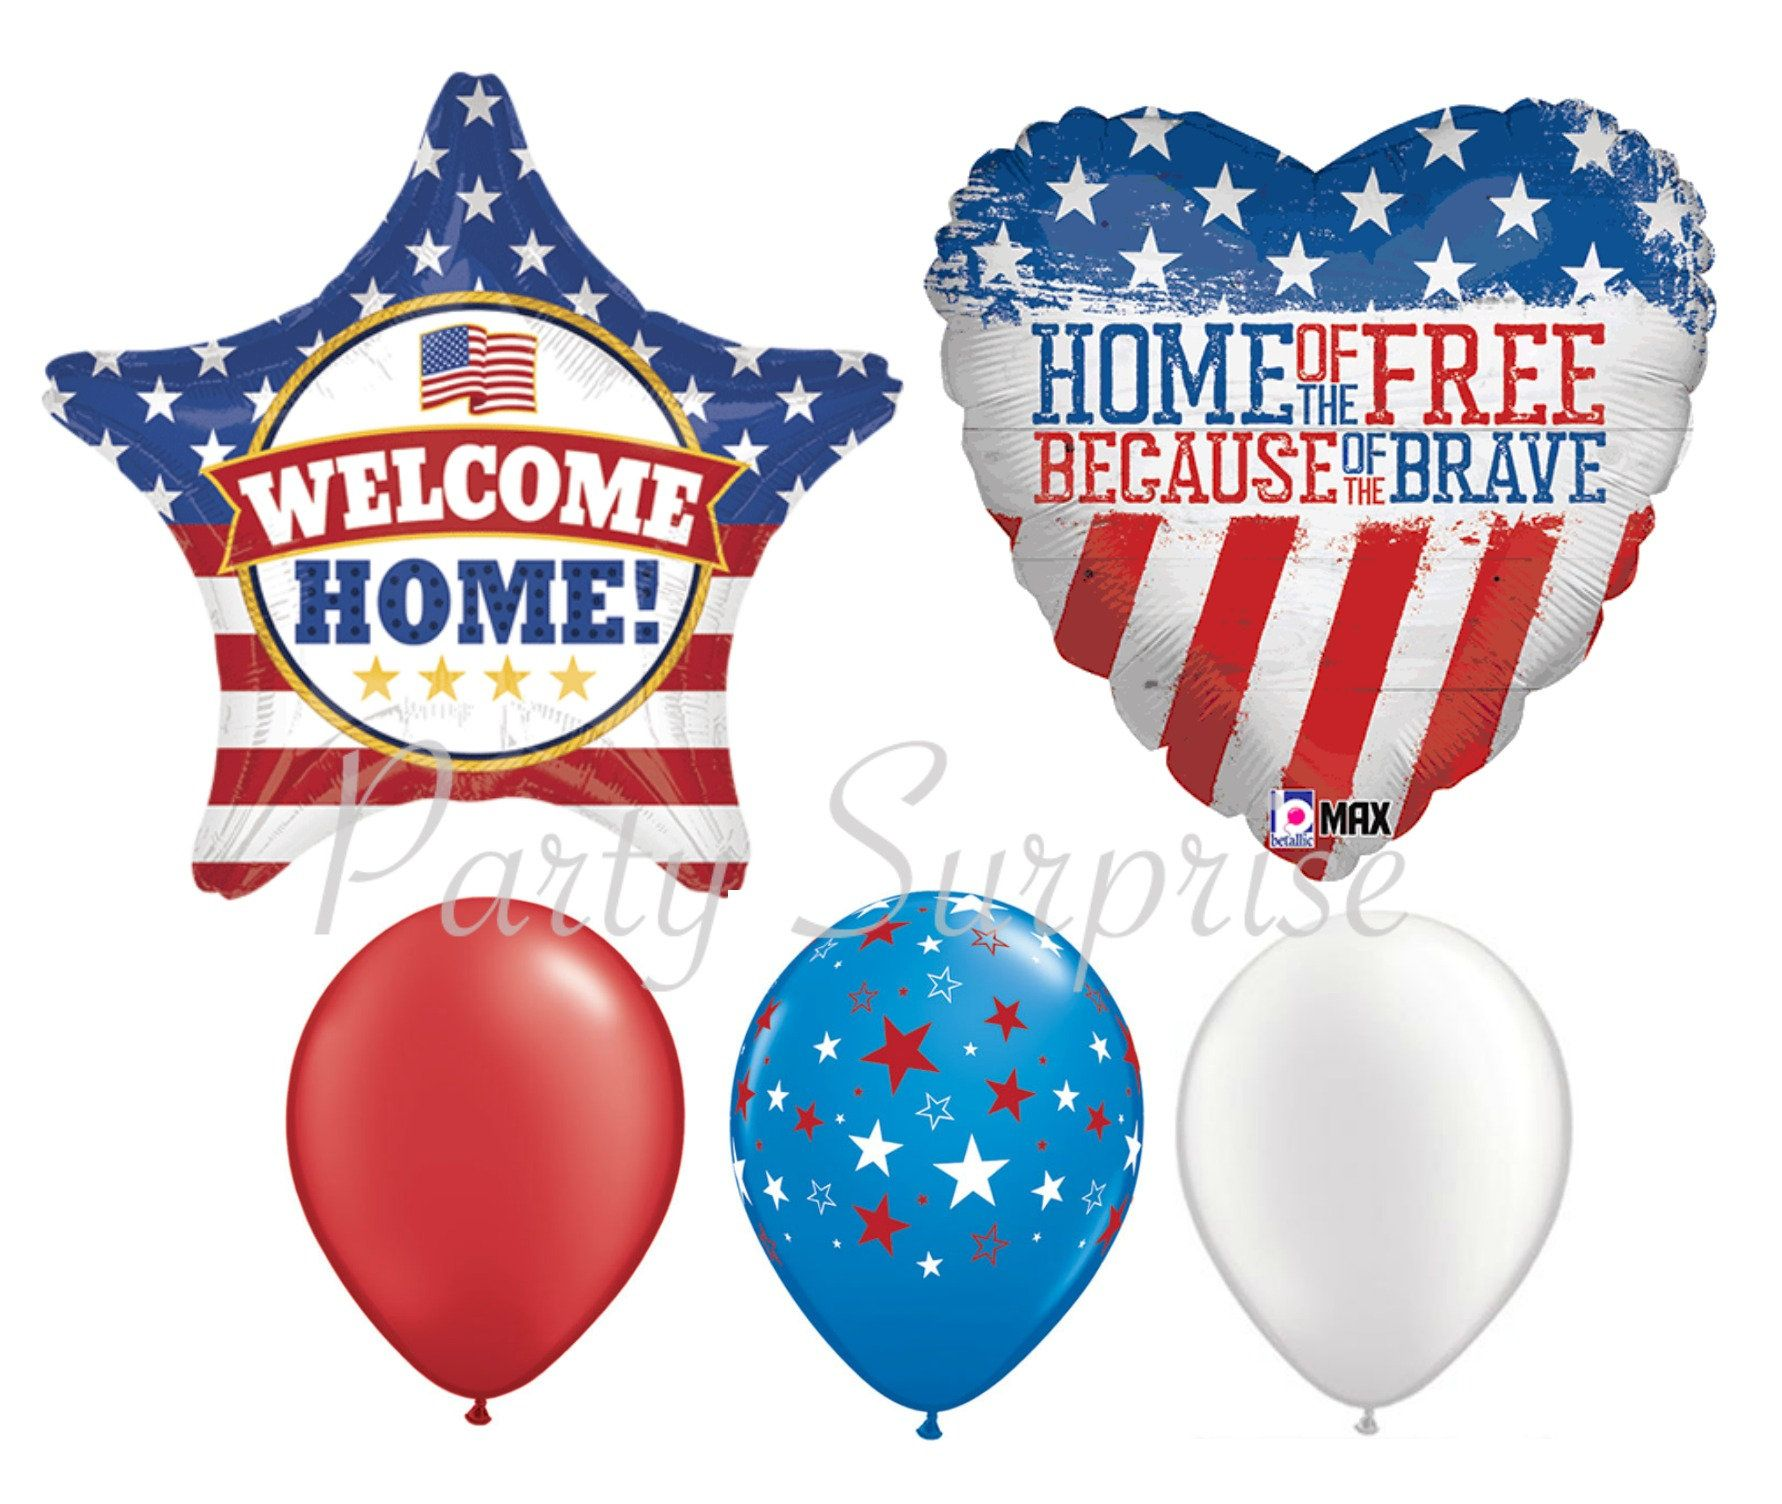 patriotic balloon package welcome home home of the free red white rh pinterest ch Pink Balloons Pink Balloons